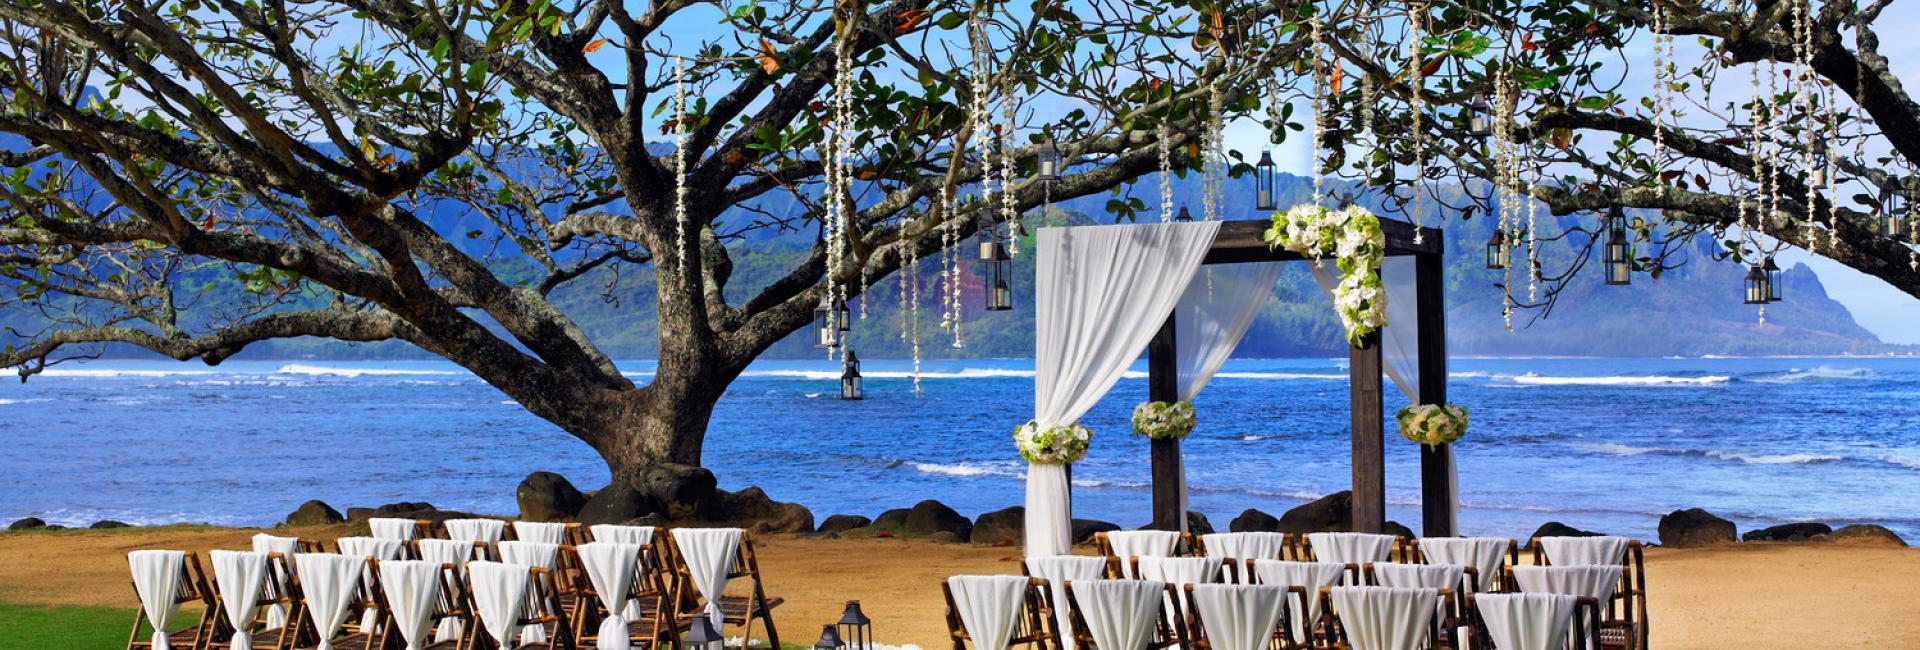 Hanalei Bay Kamani Cove Wedding